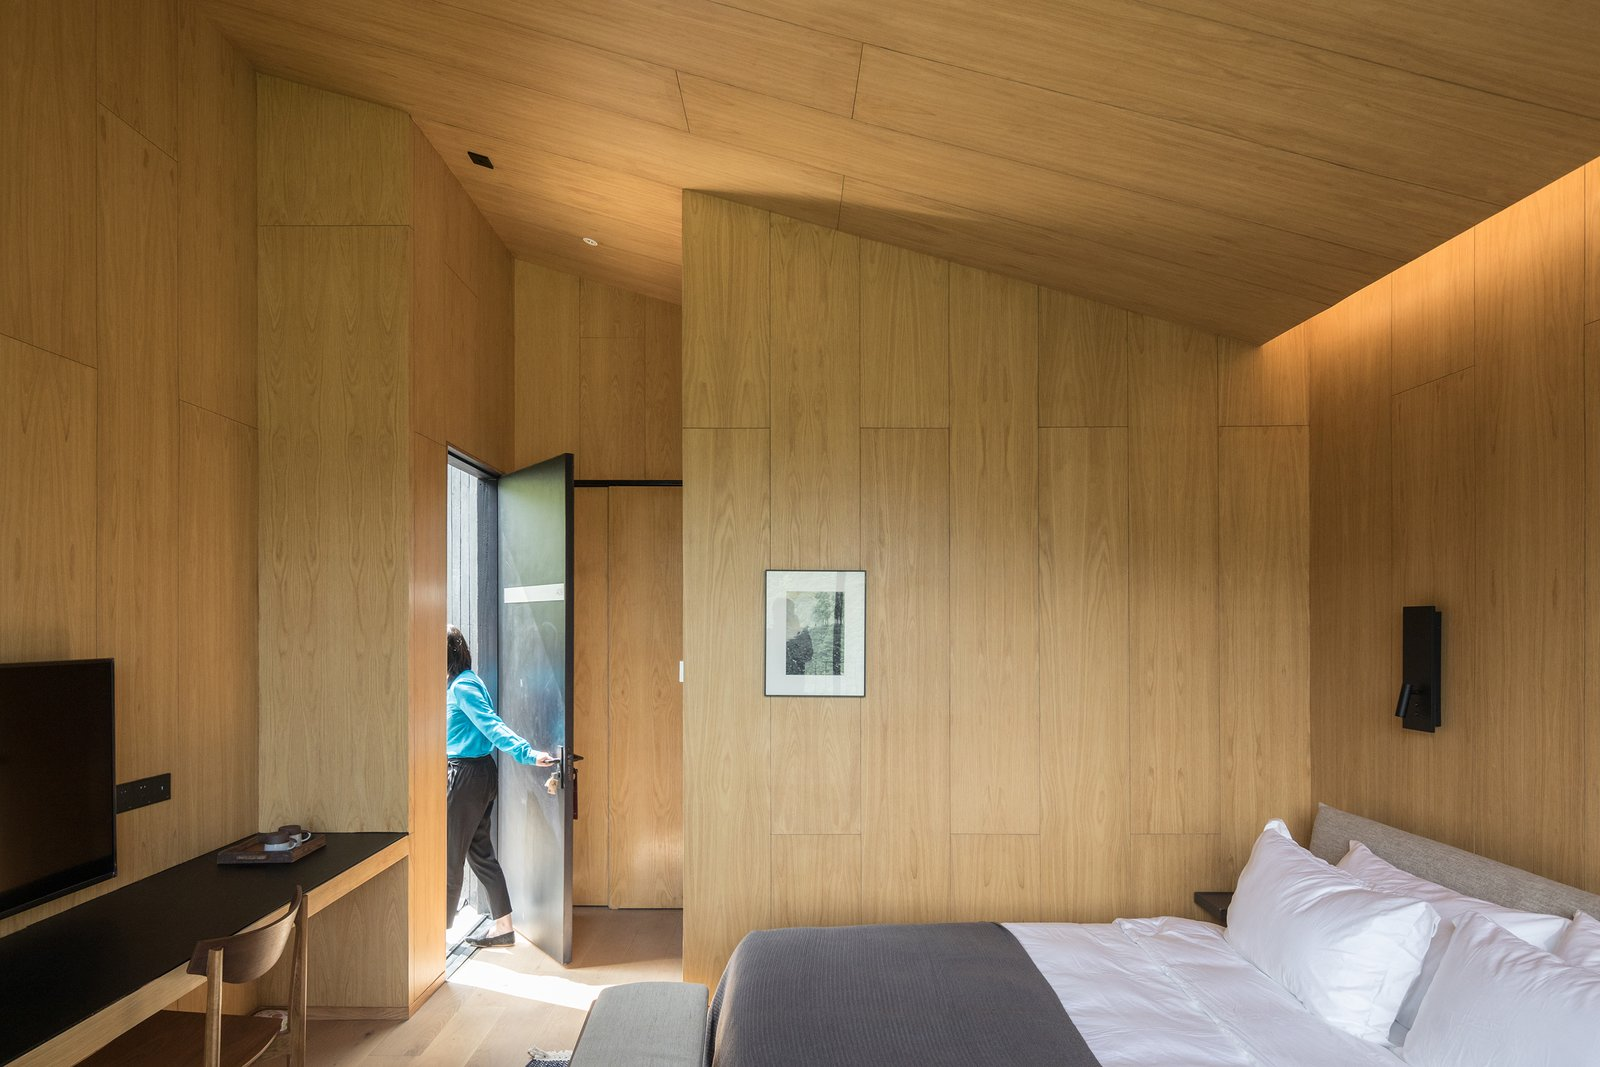 Woodhouse Hotel ZJJZ Architects Bedroom